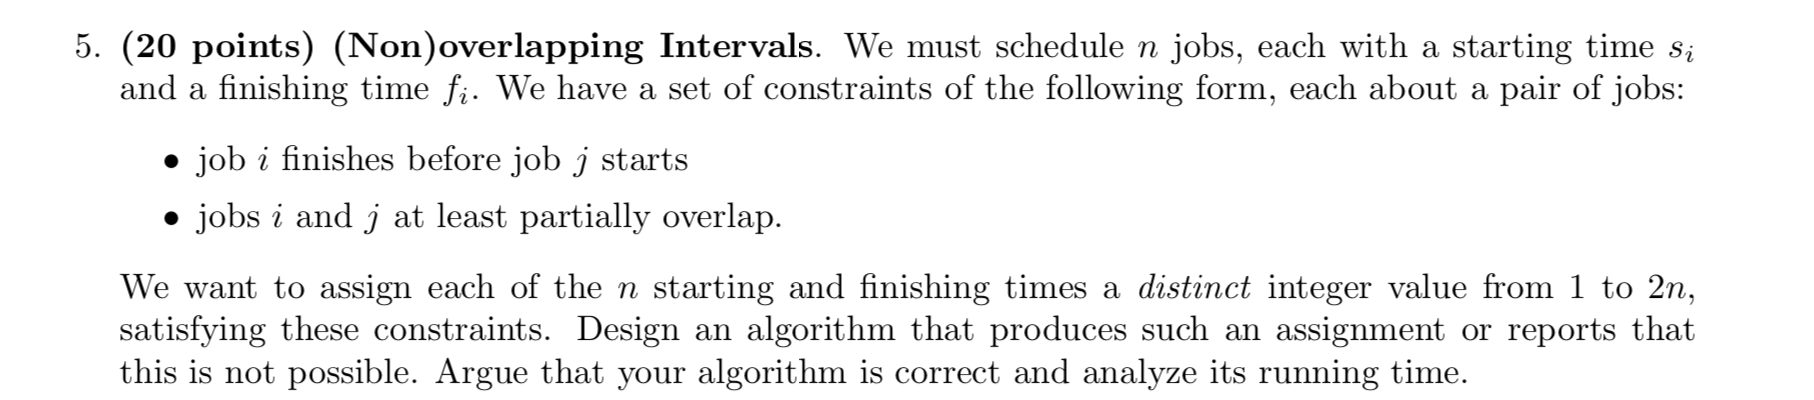 5. (20 points) (Non)overlapping Intervals. We must schedule n jobs, each with a starting time si and a finishing time fi. We